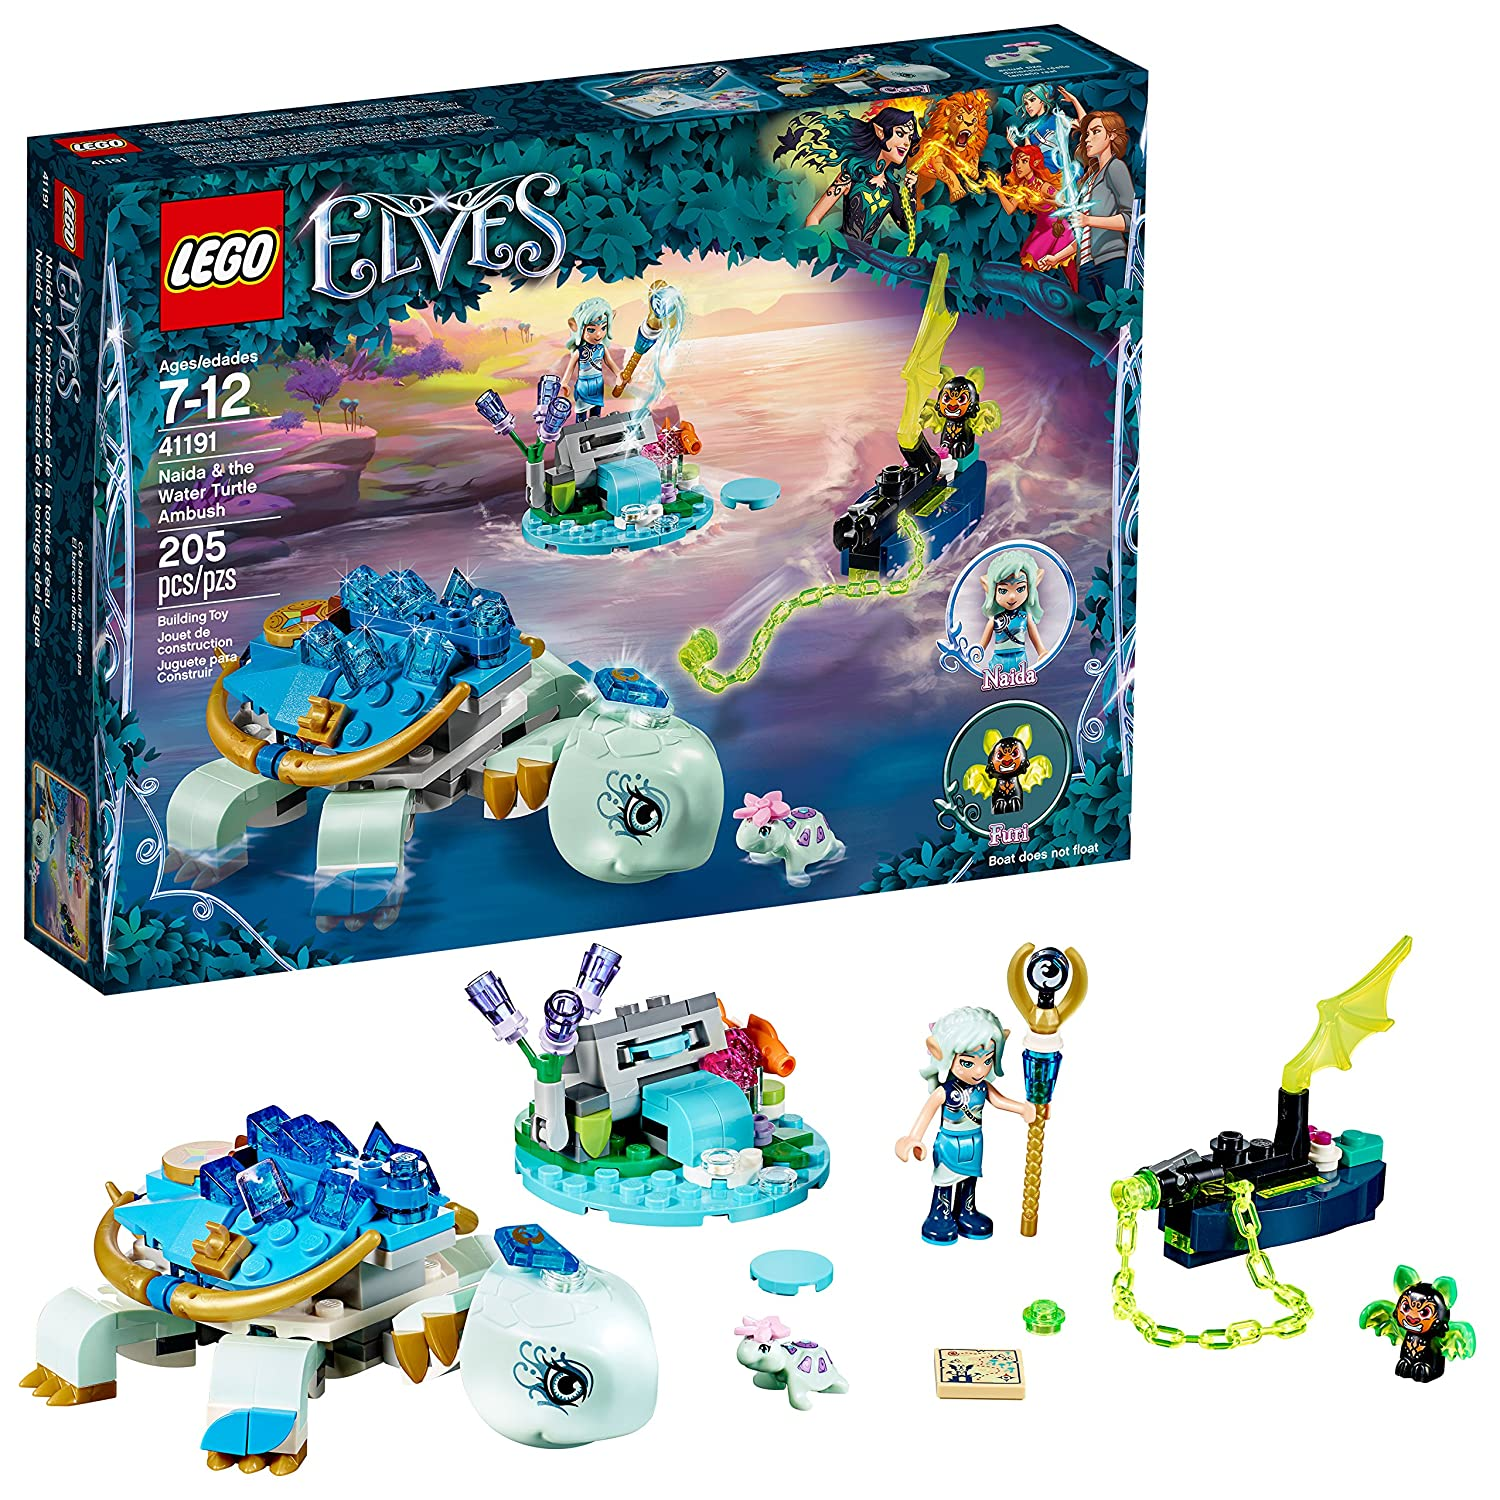 Lego Elves 6212142 Naida & The Water Turtle Ambush 41191 Building Kit (205 Piece)